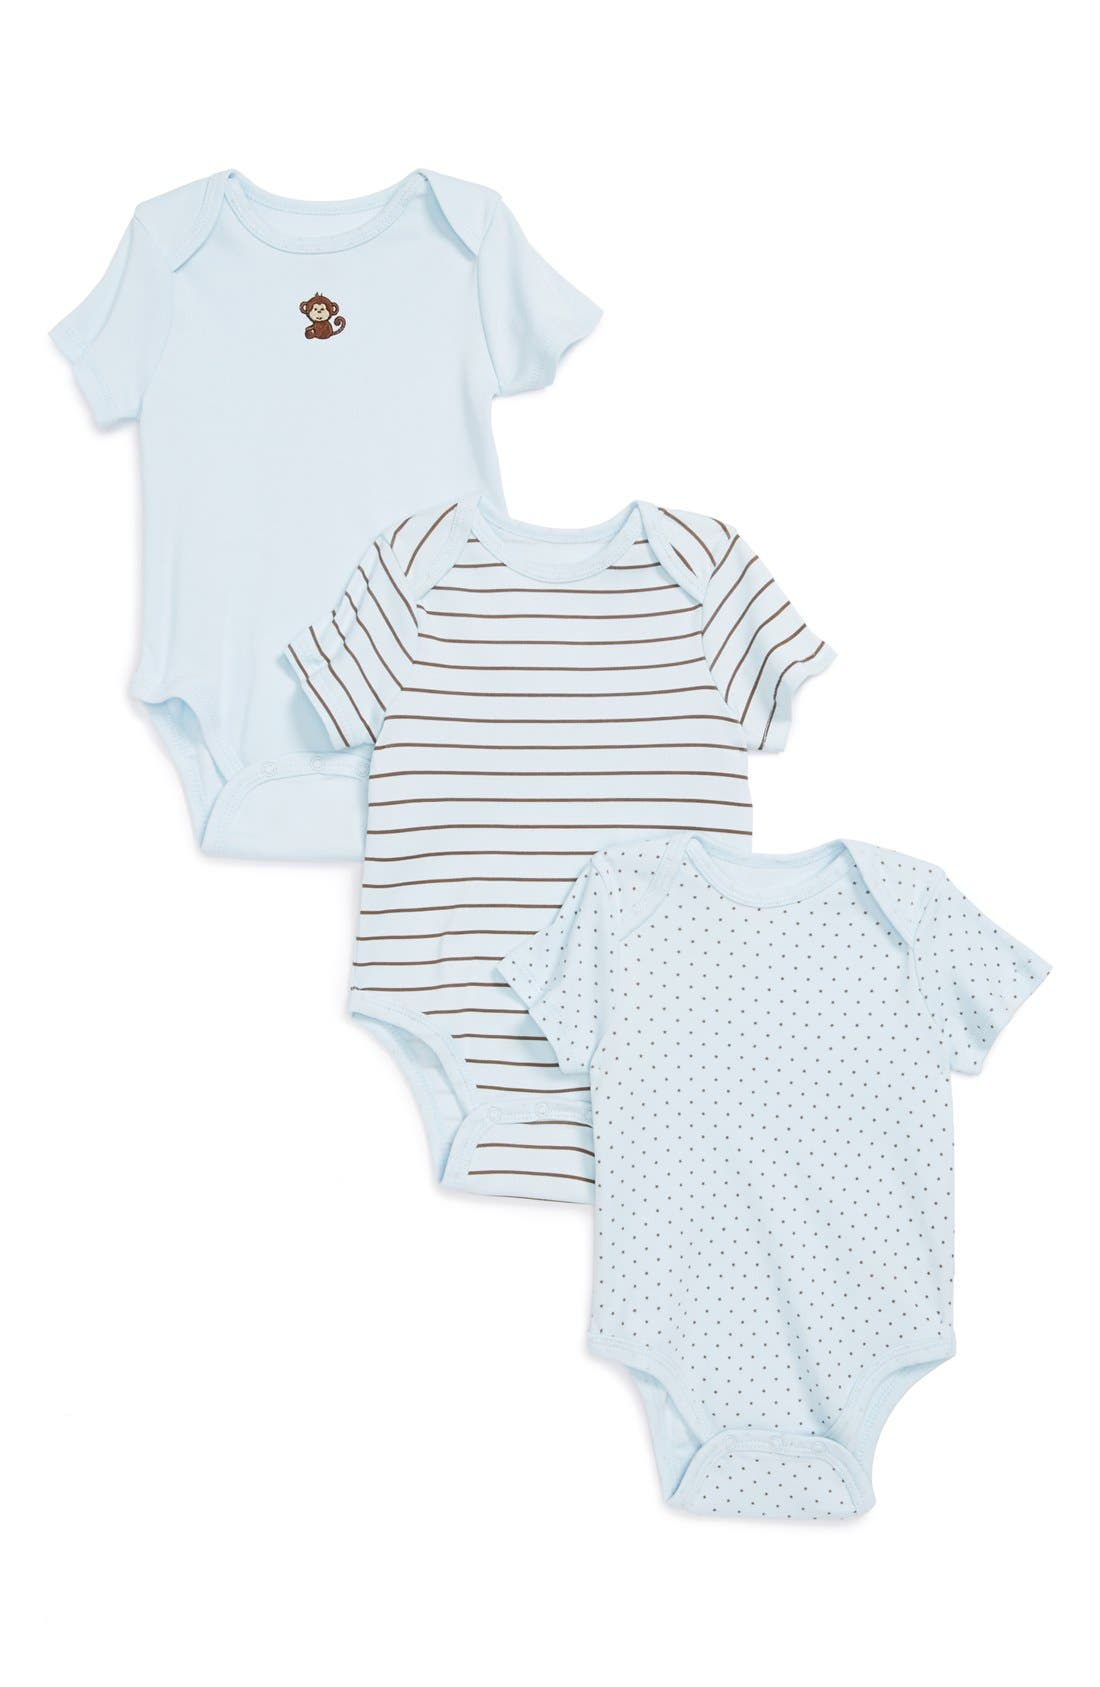 Main Image - Little Me 'Monkey' Bodysuits (Set of 3) (Baby Boys)